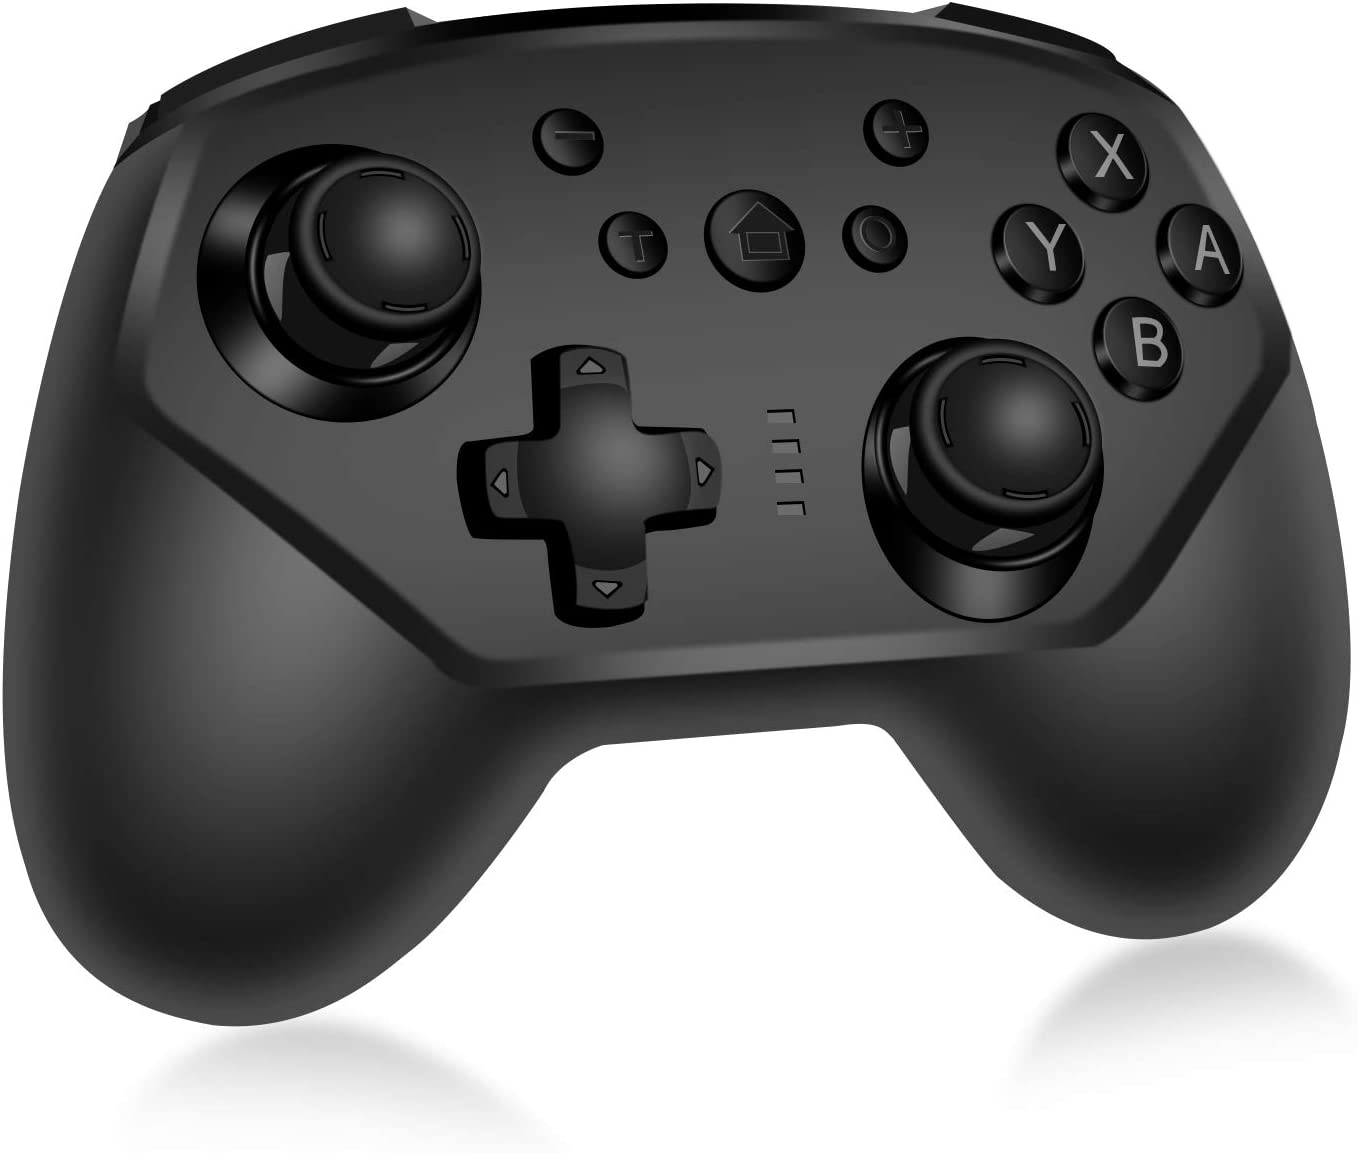 Wireless Switch Pro Controller for Nintendo Switch Console/Nintendo Switch Lite, RegeMoudal Pro Remote Gamepad Joypad Joystick for Nintendo Switch